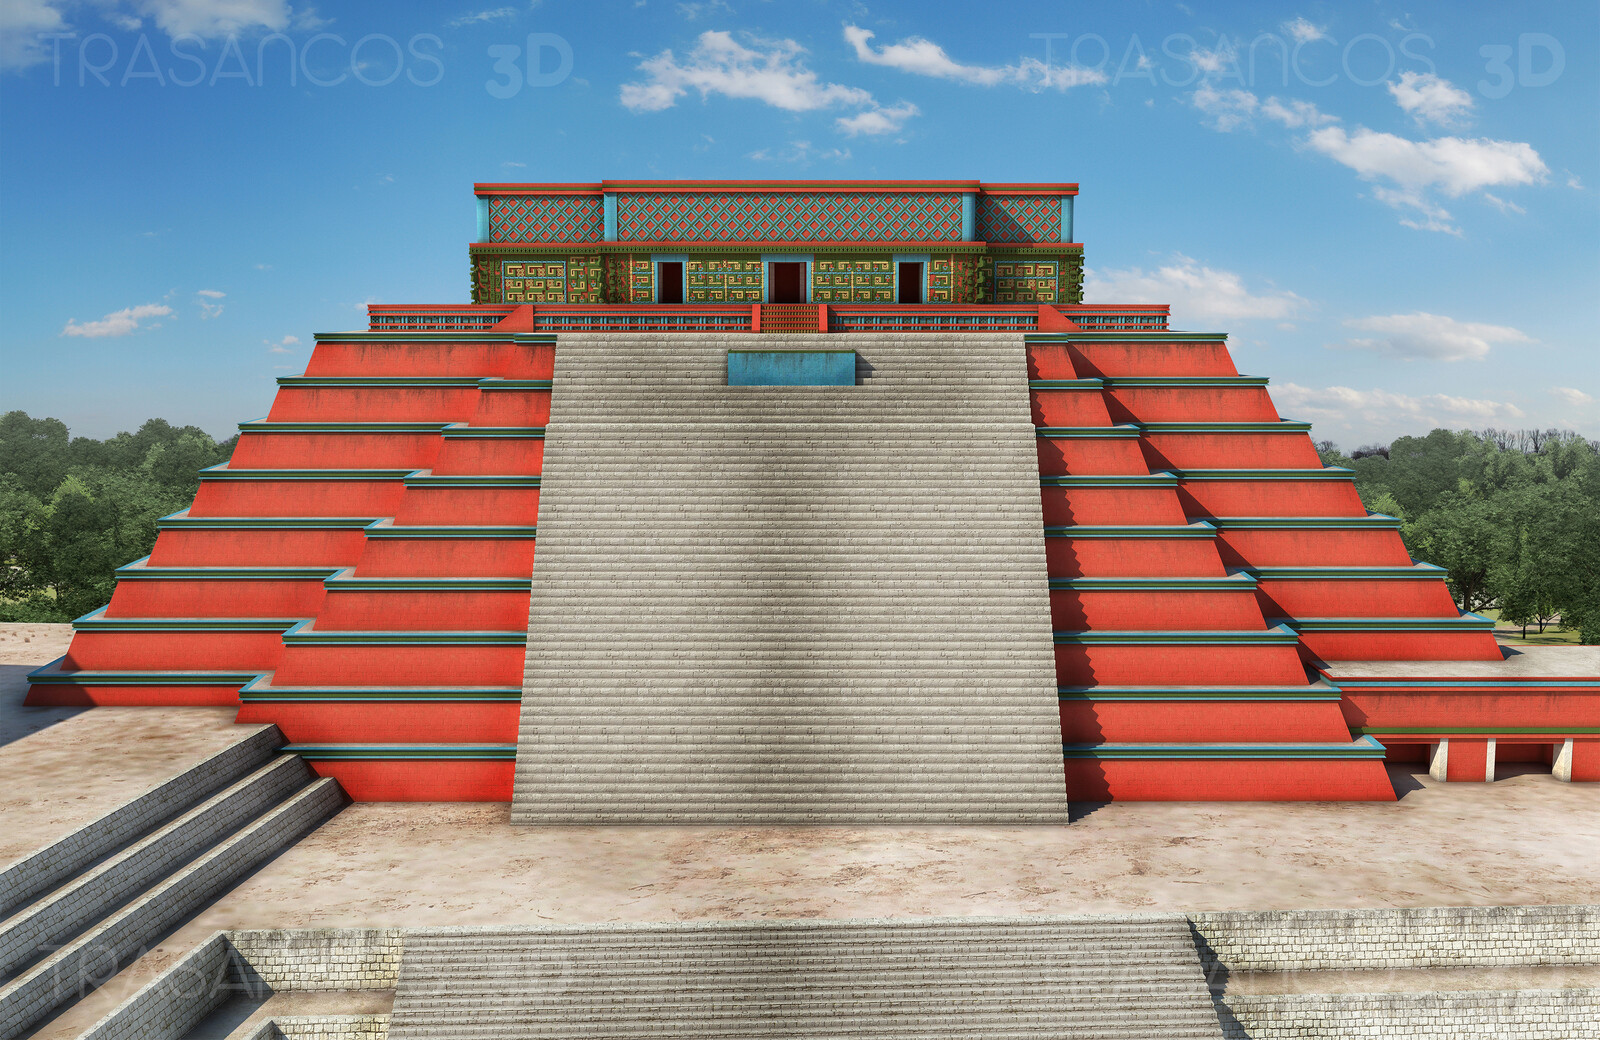 Reconstruction of the Great Pyramid of Uxmal. Modeled in collaboration with: - Carlos Paz